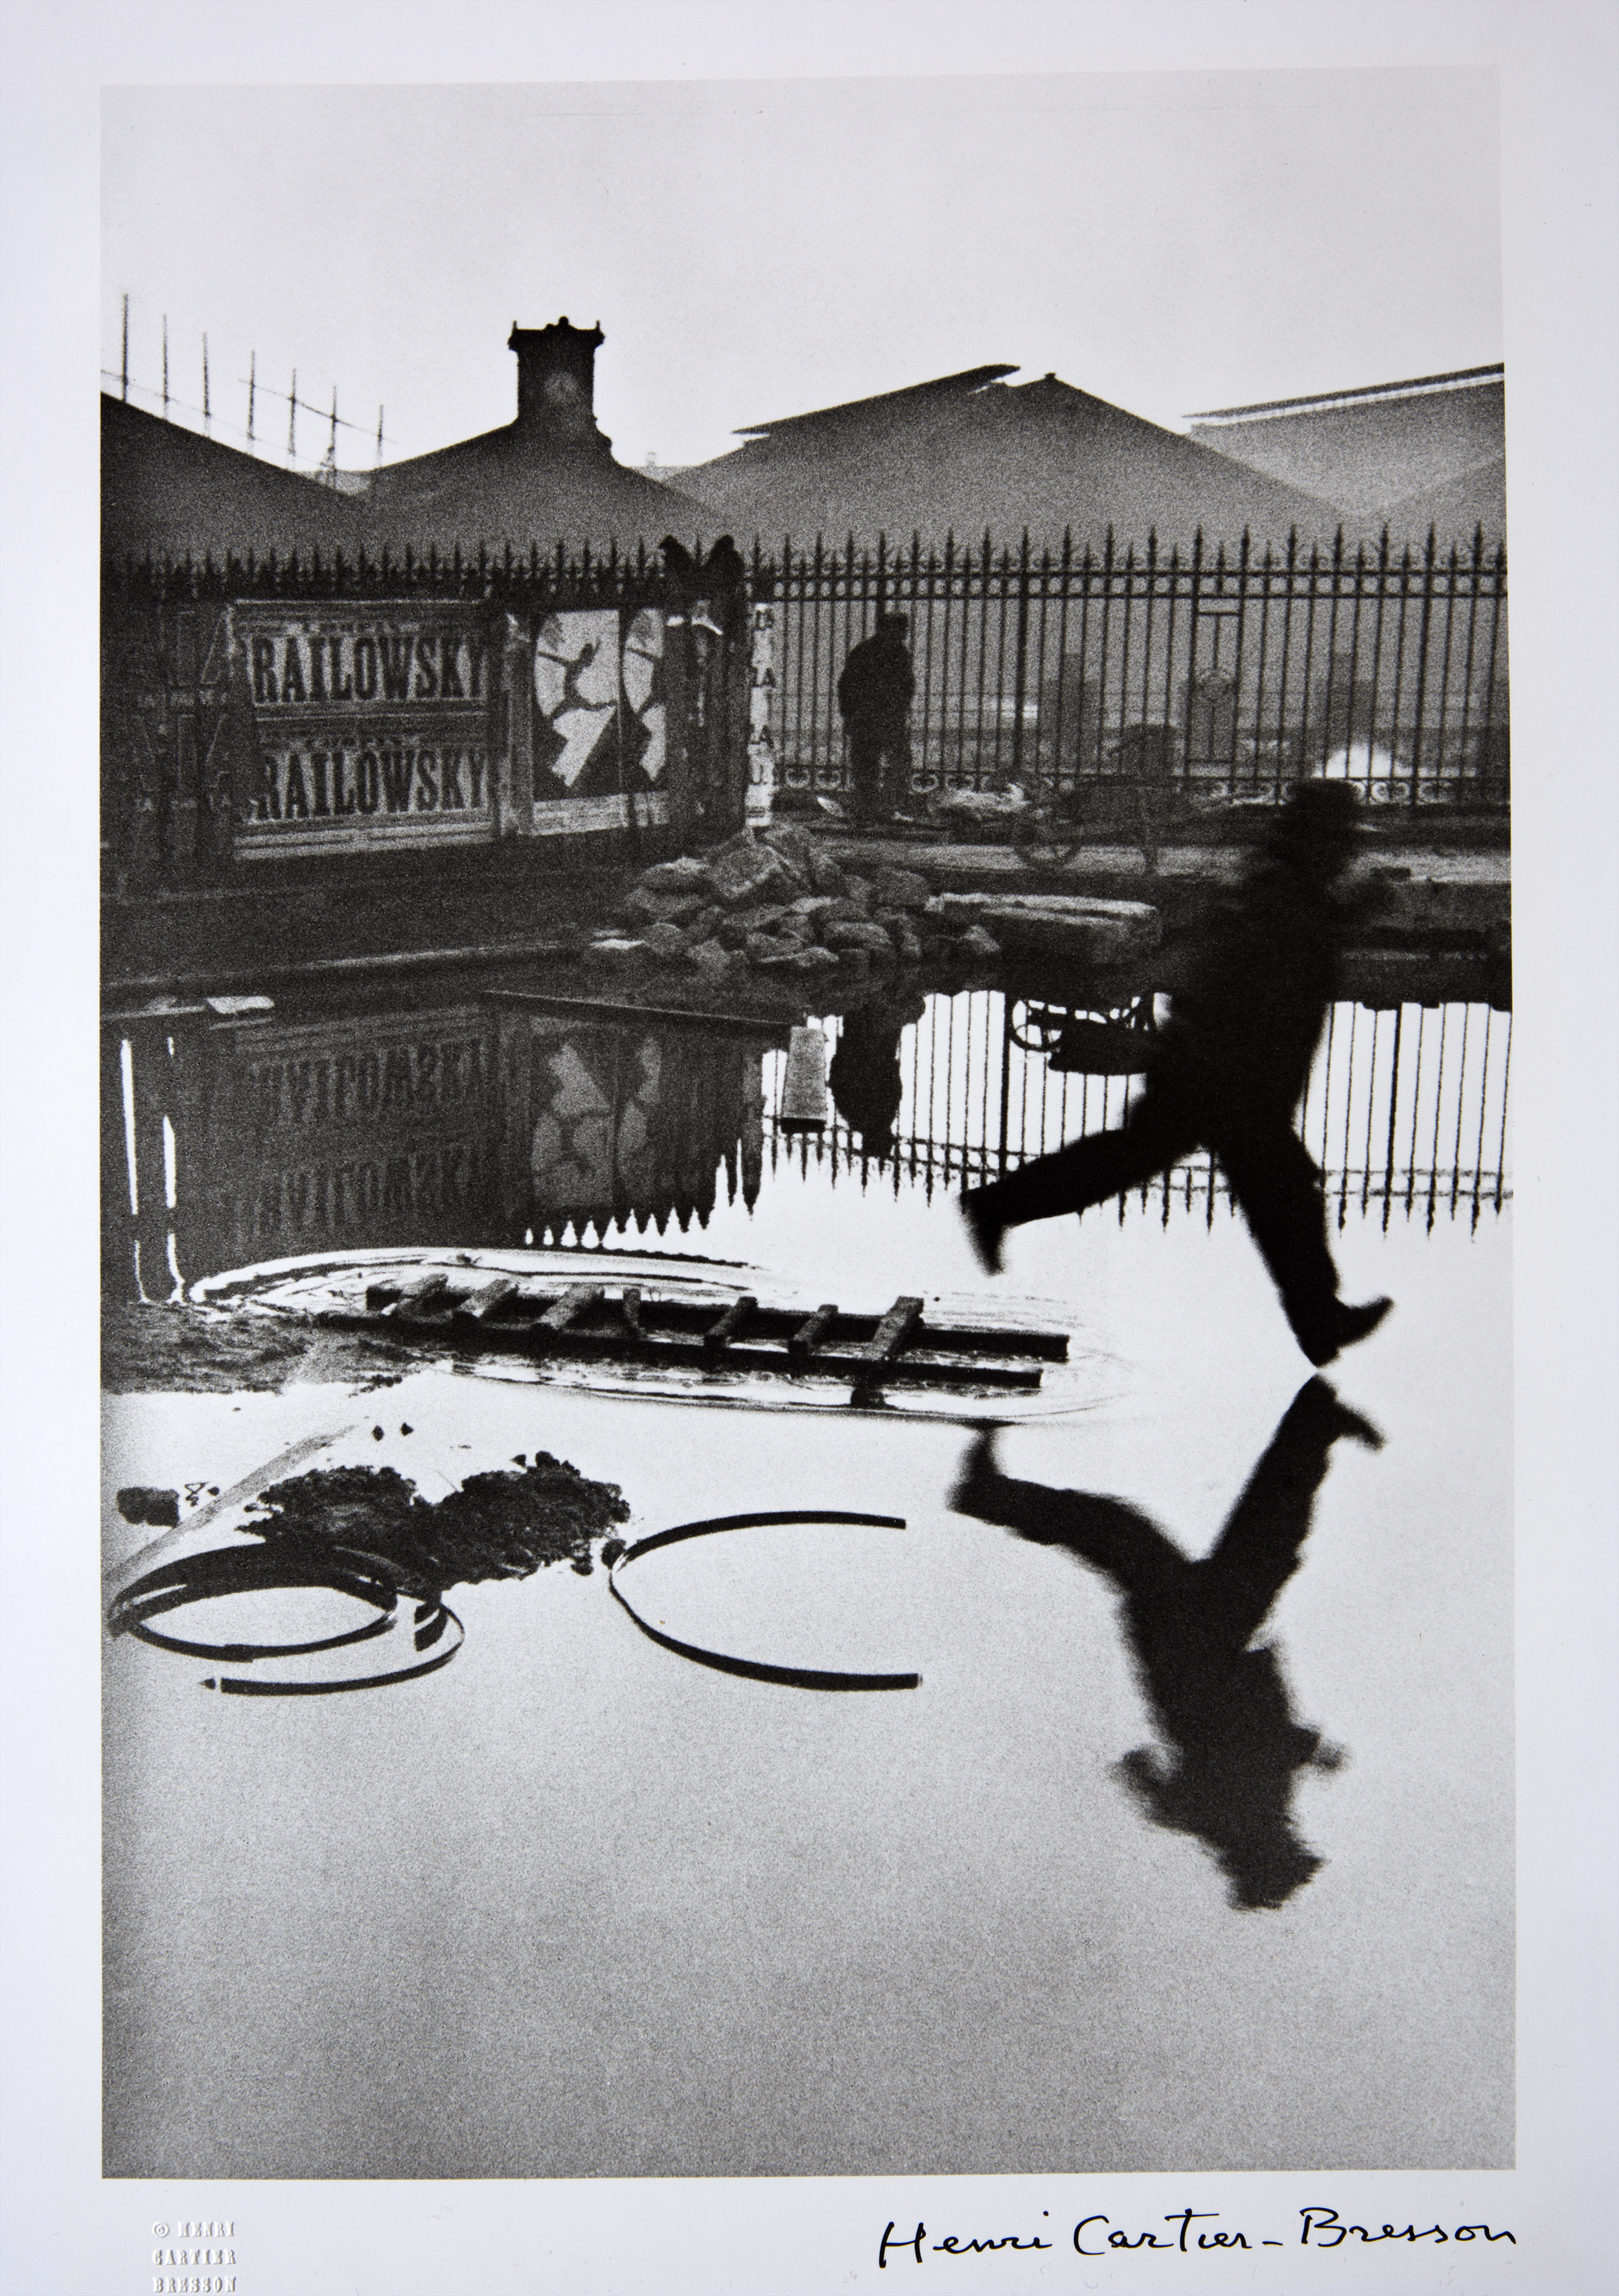 © HENRI CARTIER-BRESSON. Courtesy of Time Space Gallery (Beijing)